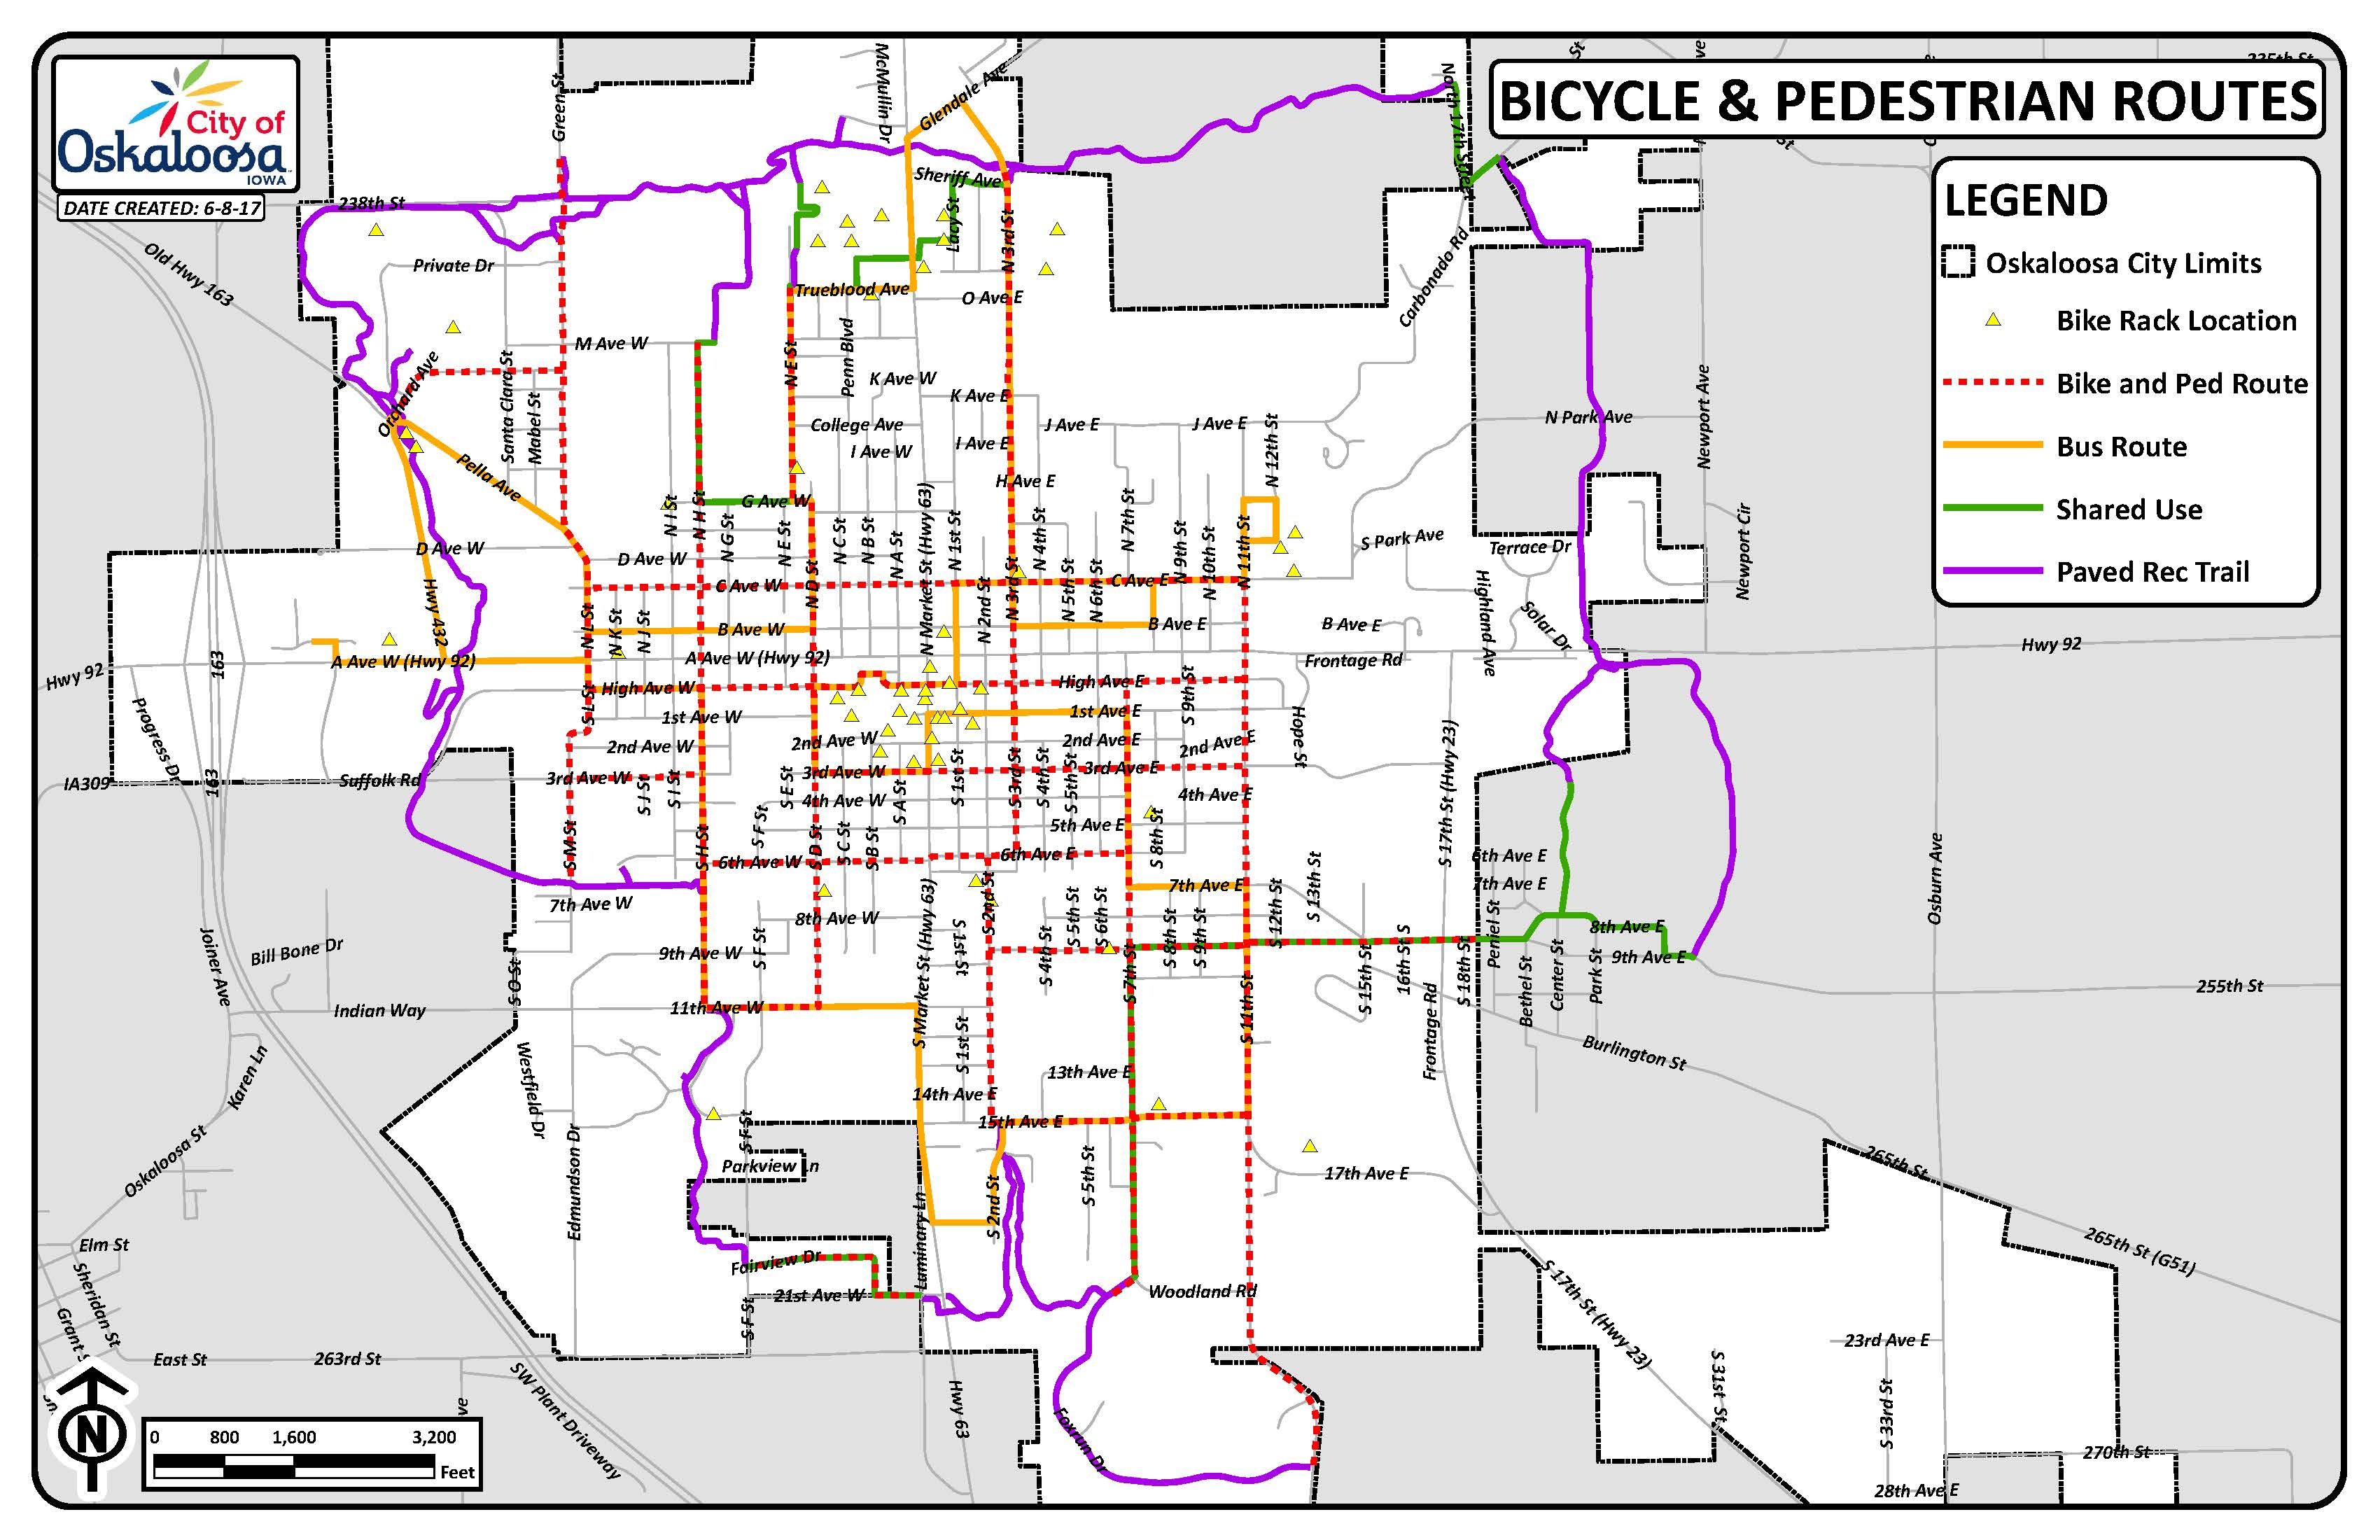 Bike Ped Bus Routes and Racks